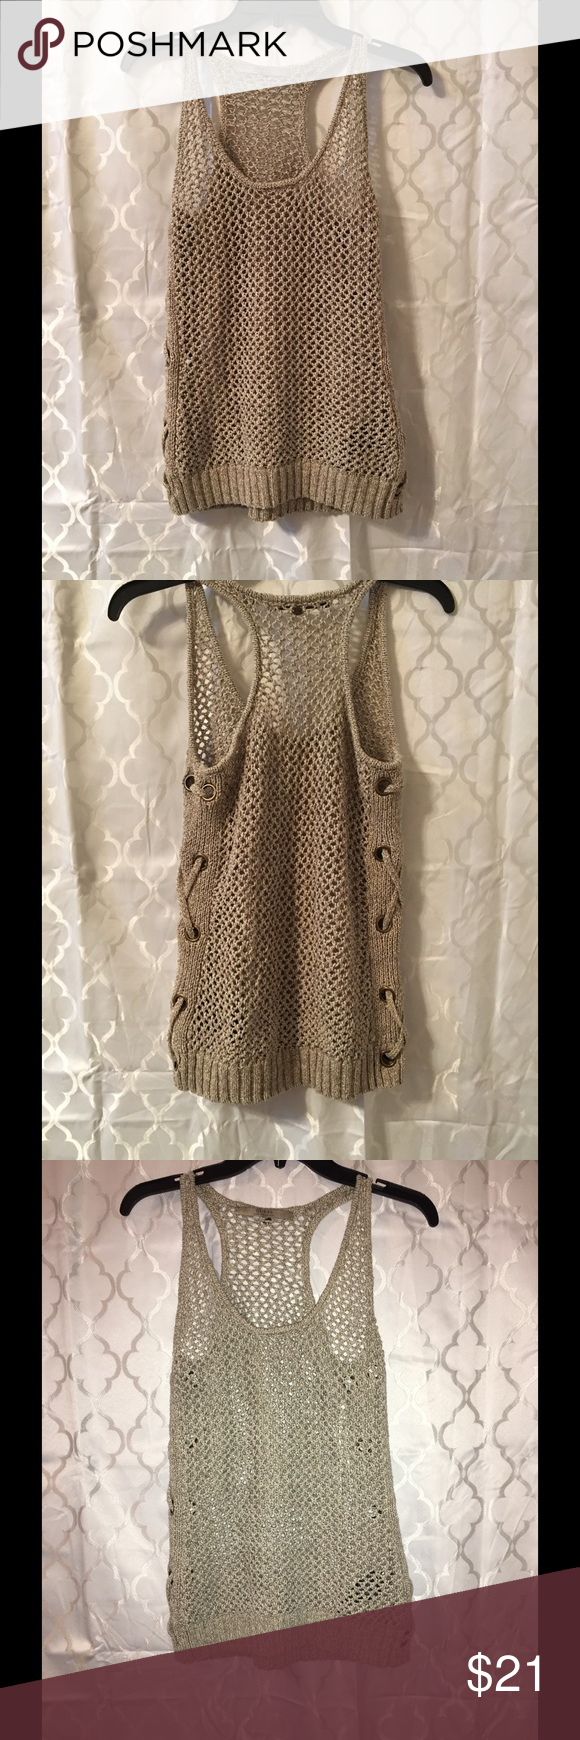 Guess Tank Sweater Guess Olive/Tan/Oatmeal color tank sweater. Perforated look for layering. Lace up side detail with gold hardware. Worn once. Last photo is with flash on. Size XS Guess Tops Tank Tops